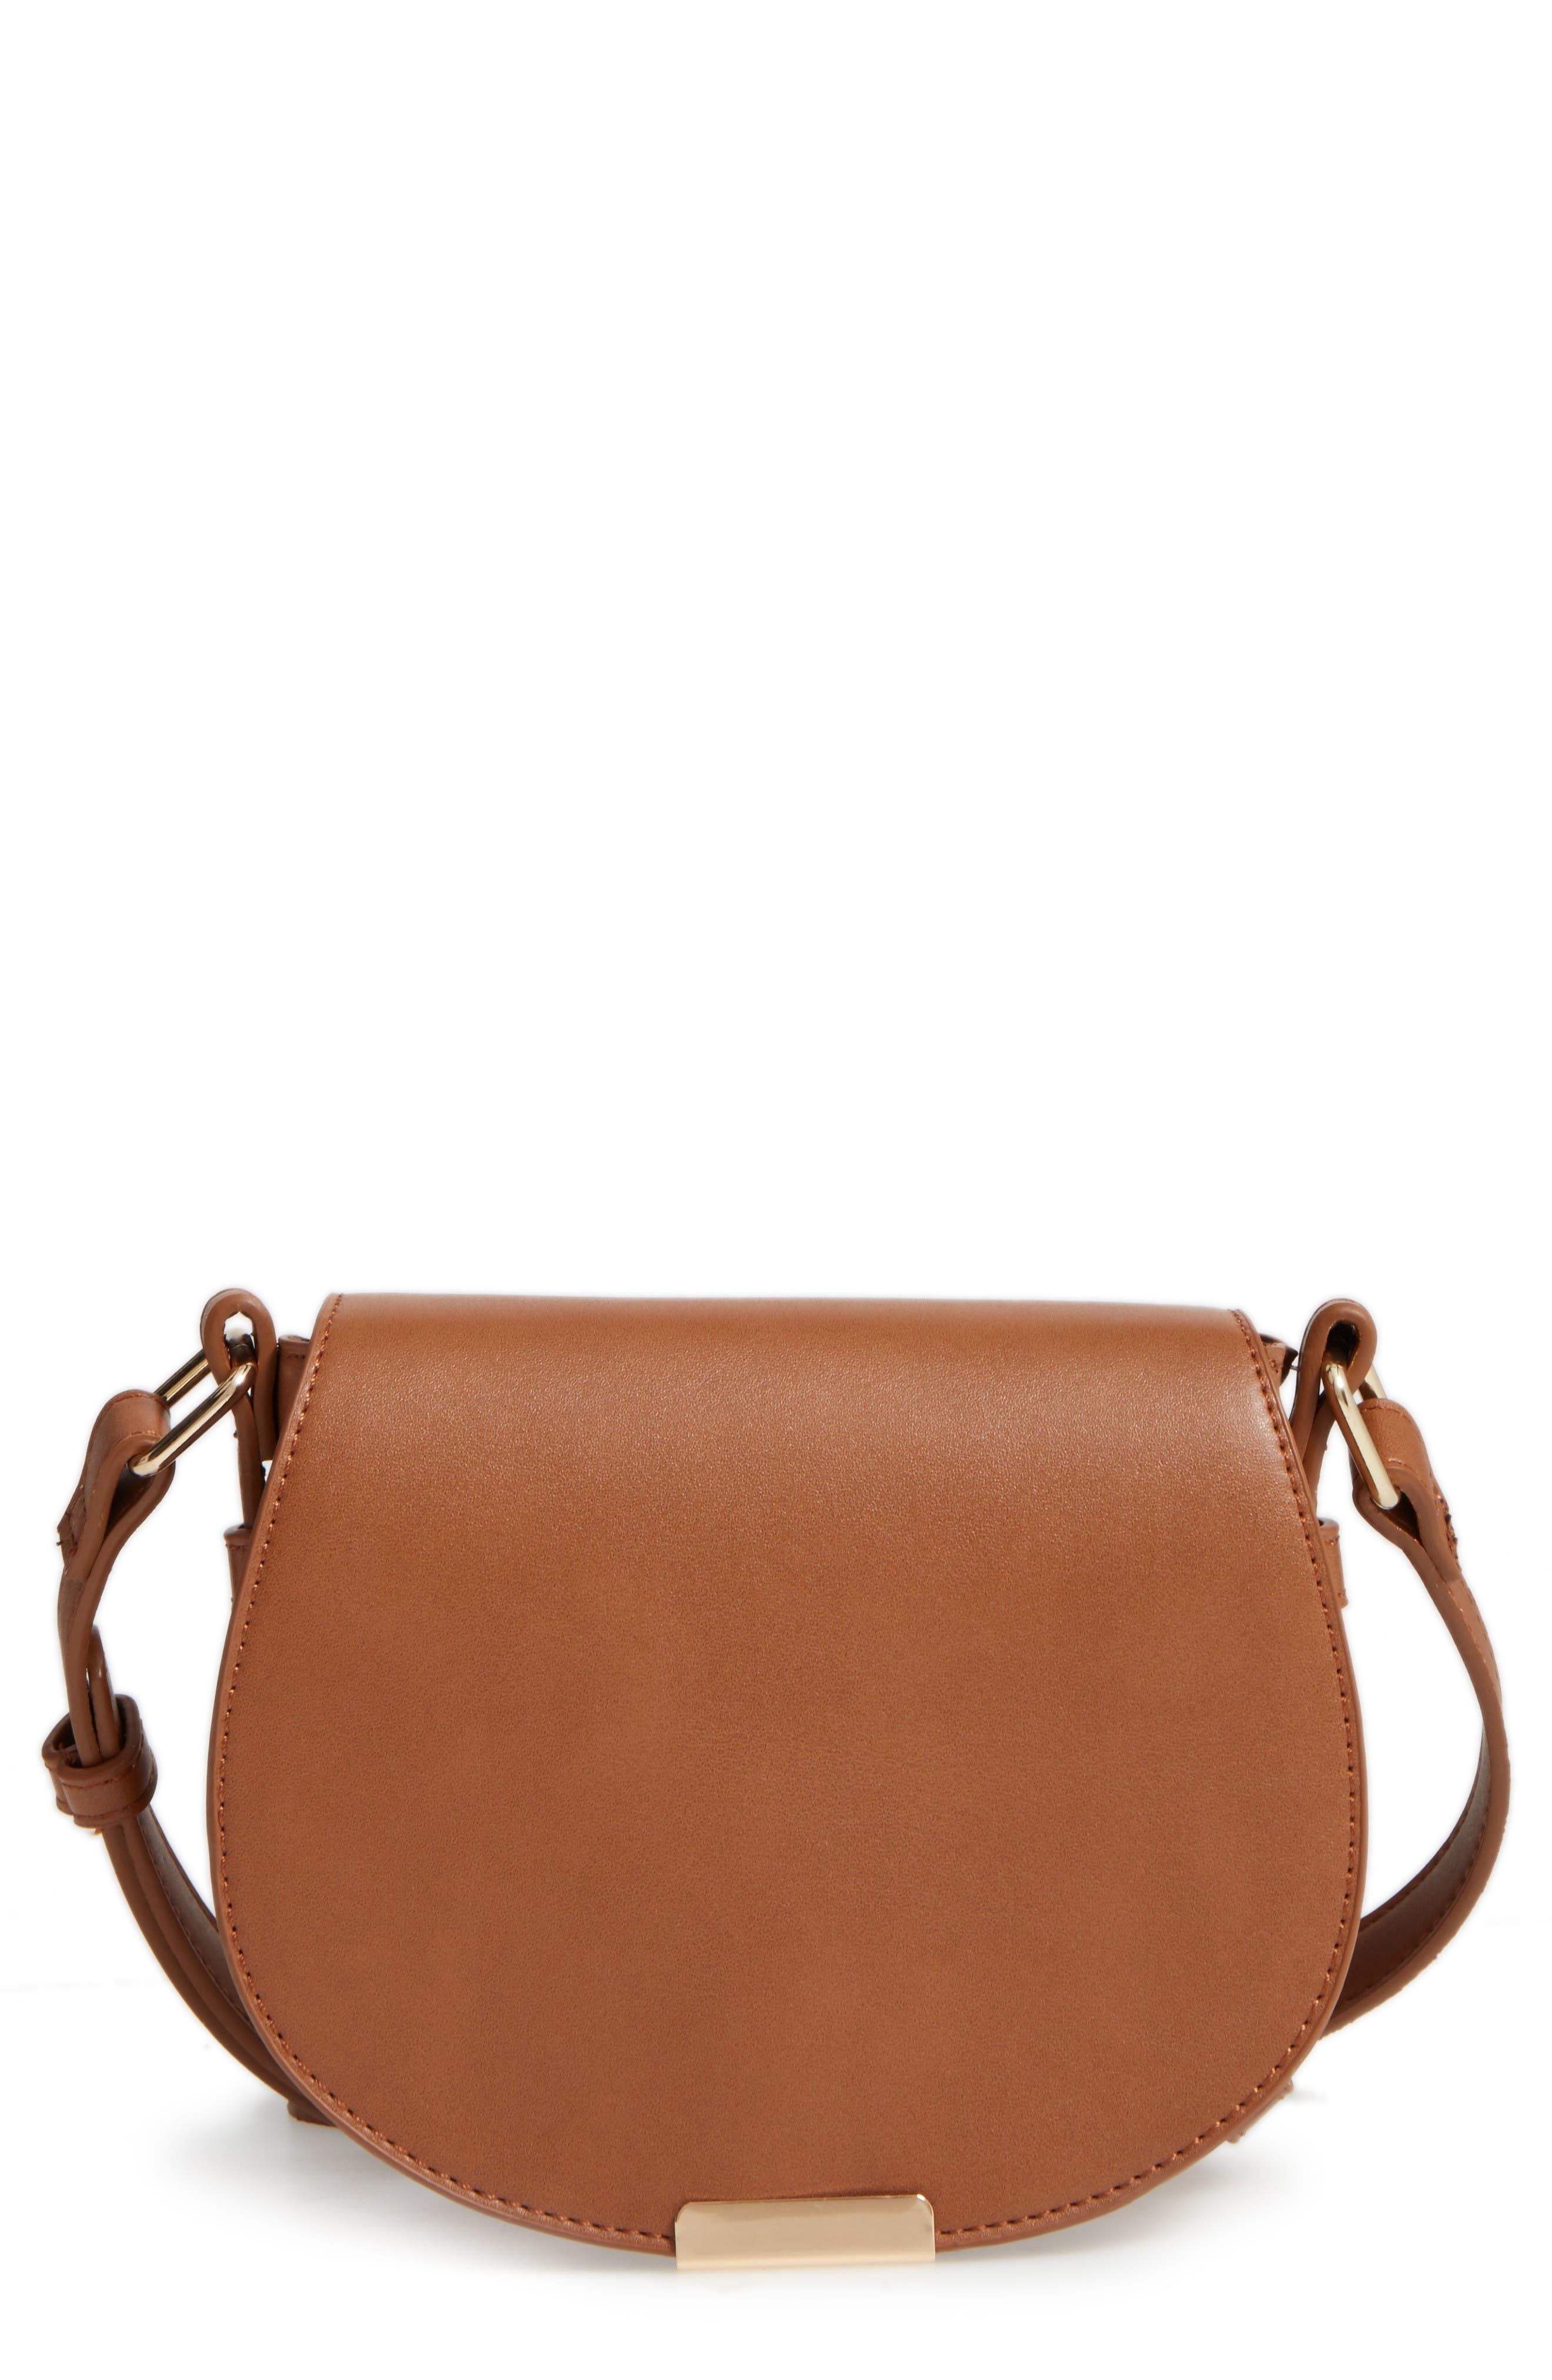 Alternate Image 1 Selected - BP. Faux Leather Small Saddle Crossbody Bag